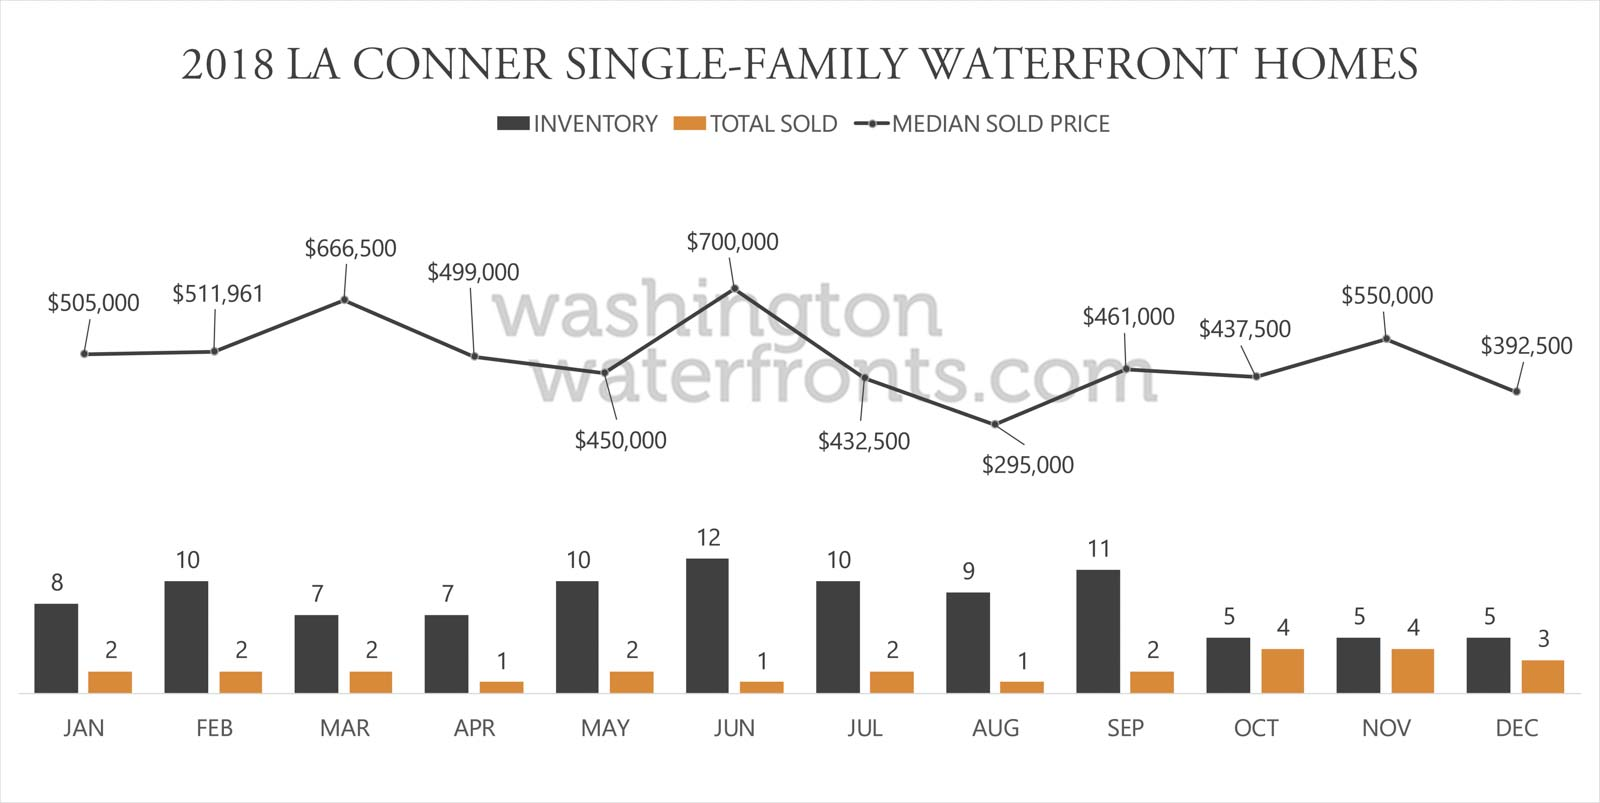 La Conner Waterfront Inventory